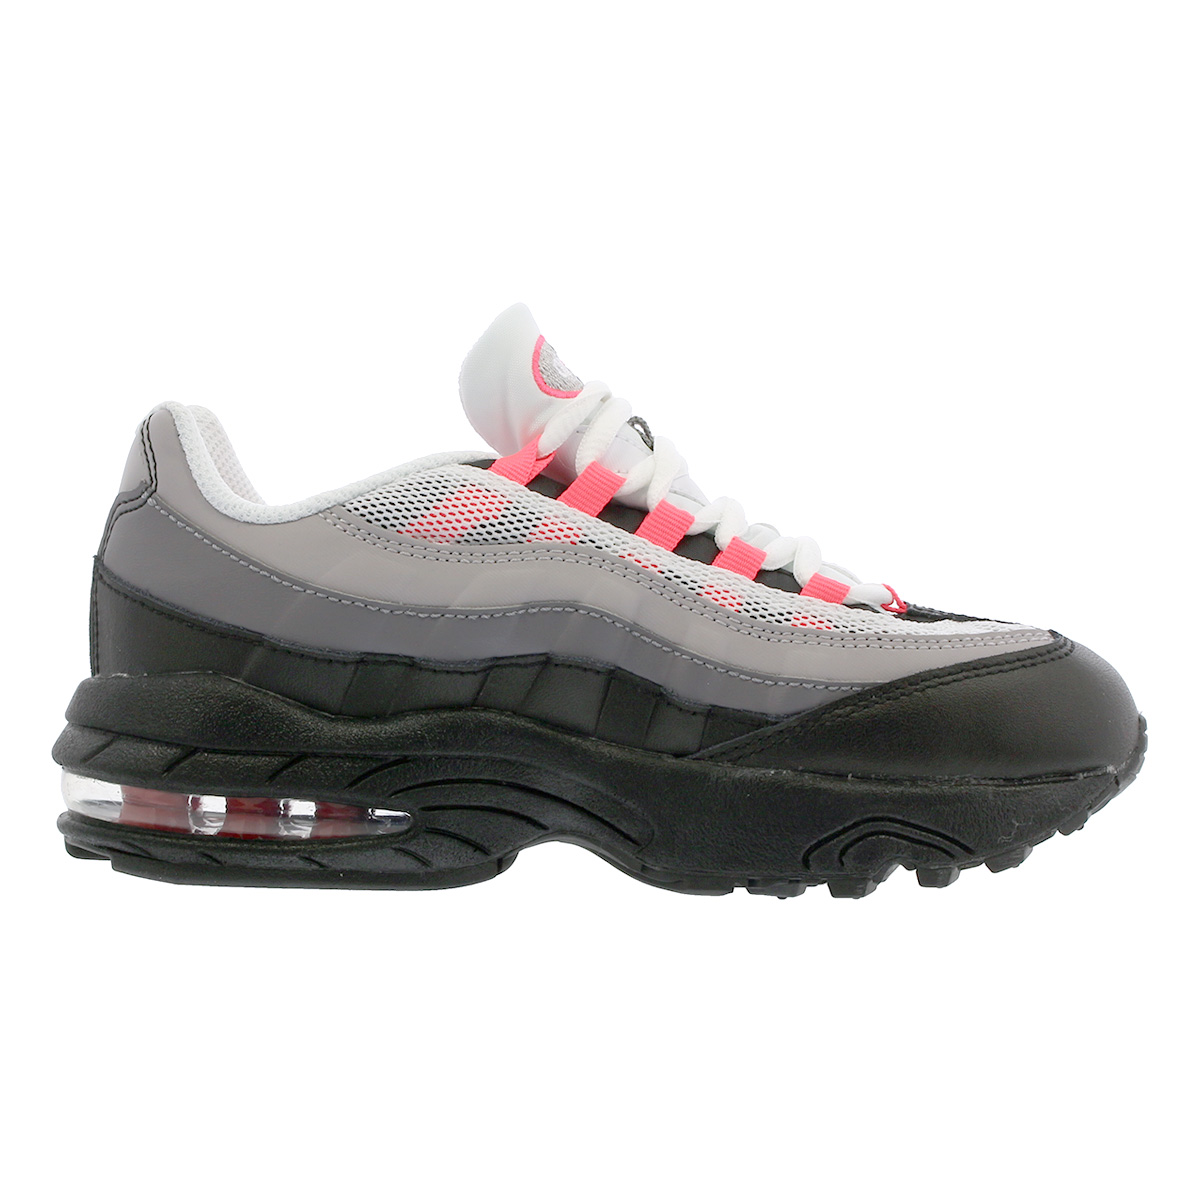 05e10dcba6 ... NIKE AIR MAX 95 PS Kie Ney AMAX SE PS BLACK/SOLAR RED GUNSMOKE ...